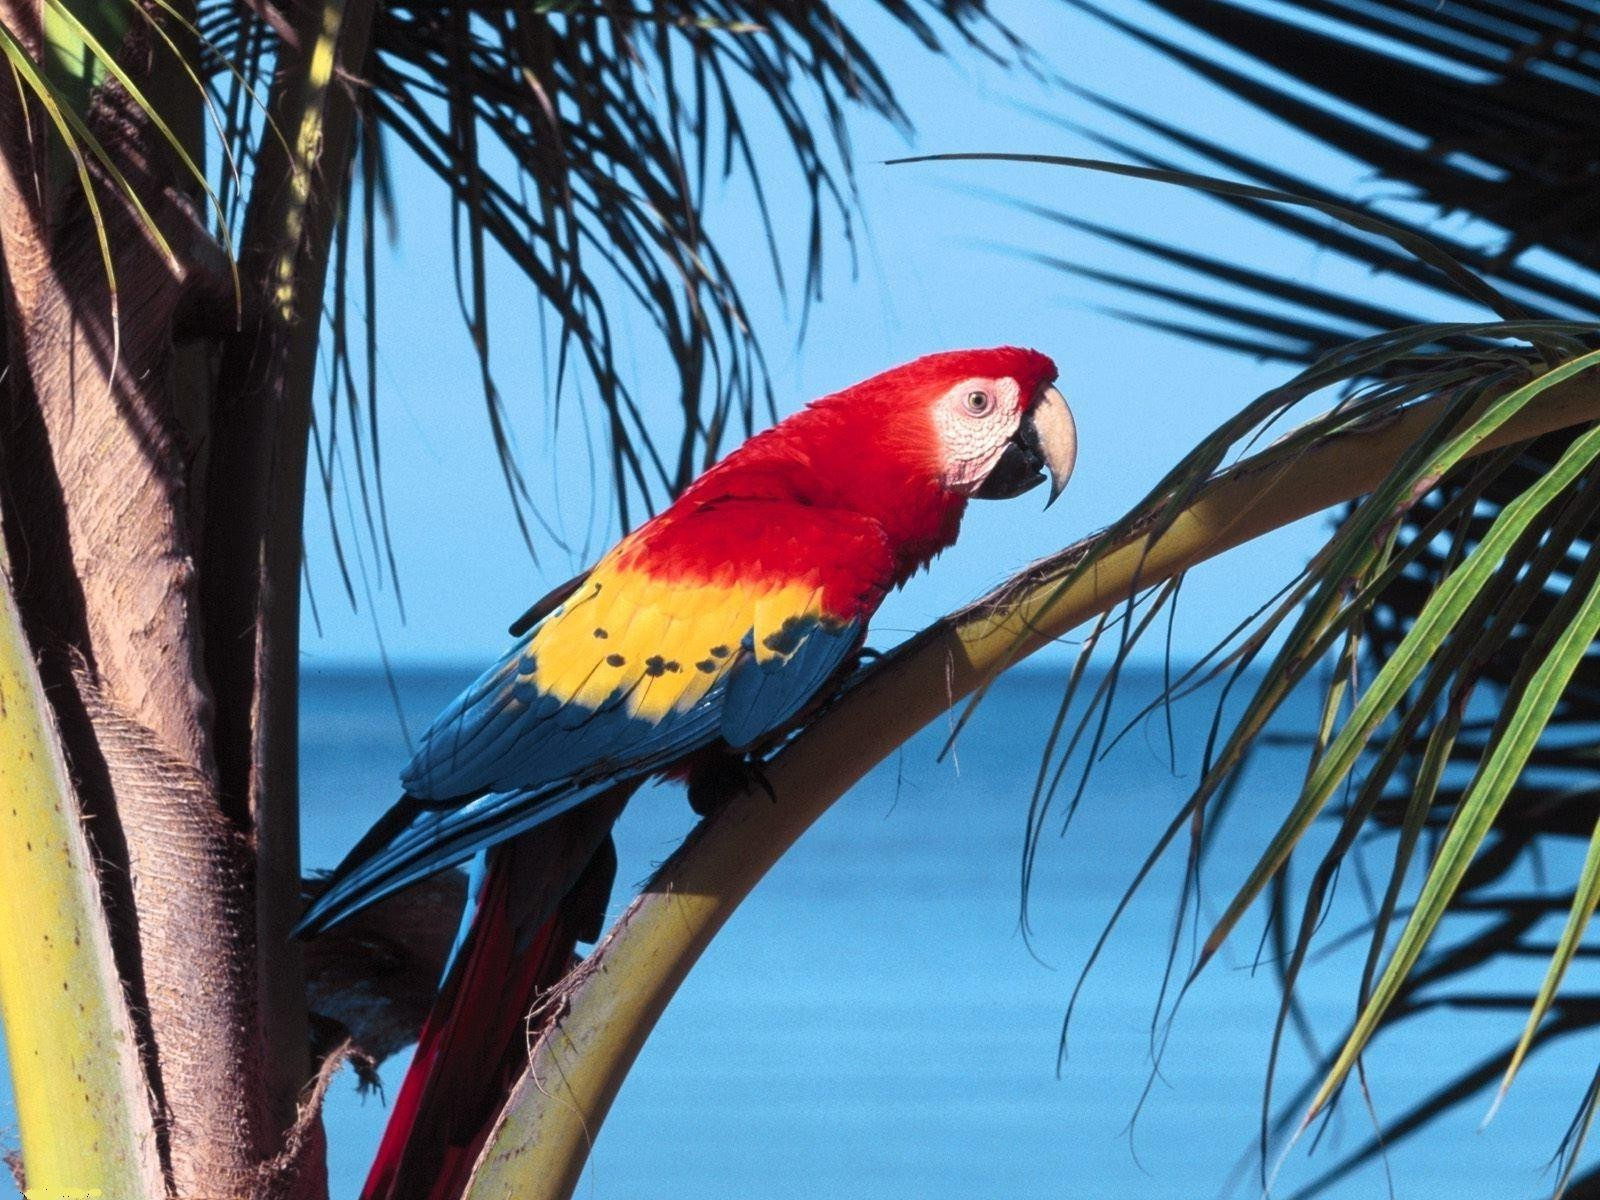 animals bird parrot tropical wildlife exotic macaw nature avian color feather tree beak wing parakeet wild outdoors